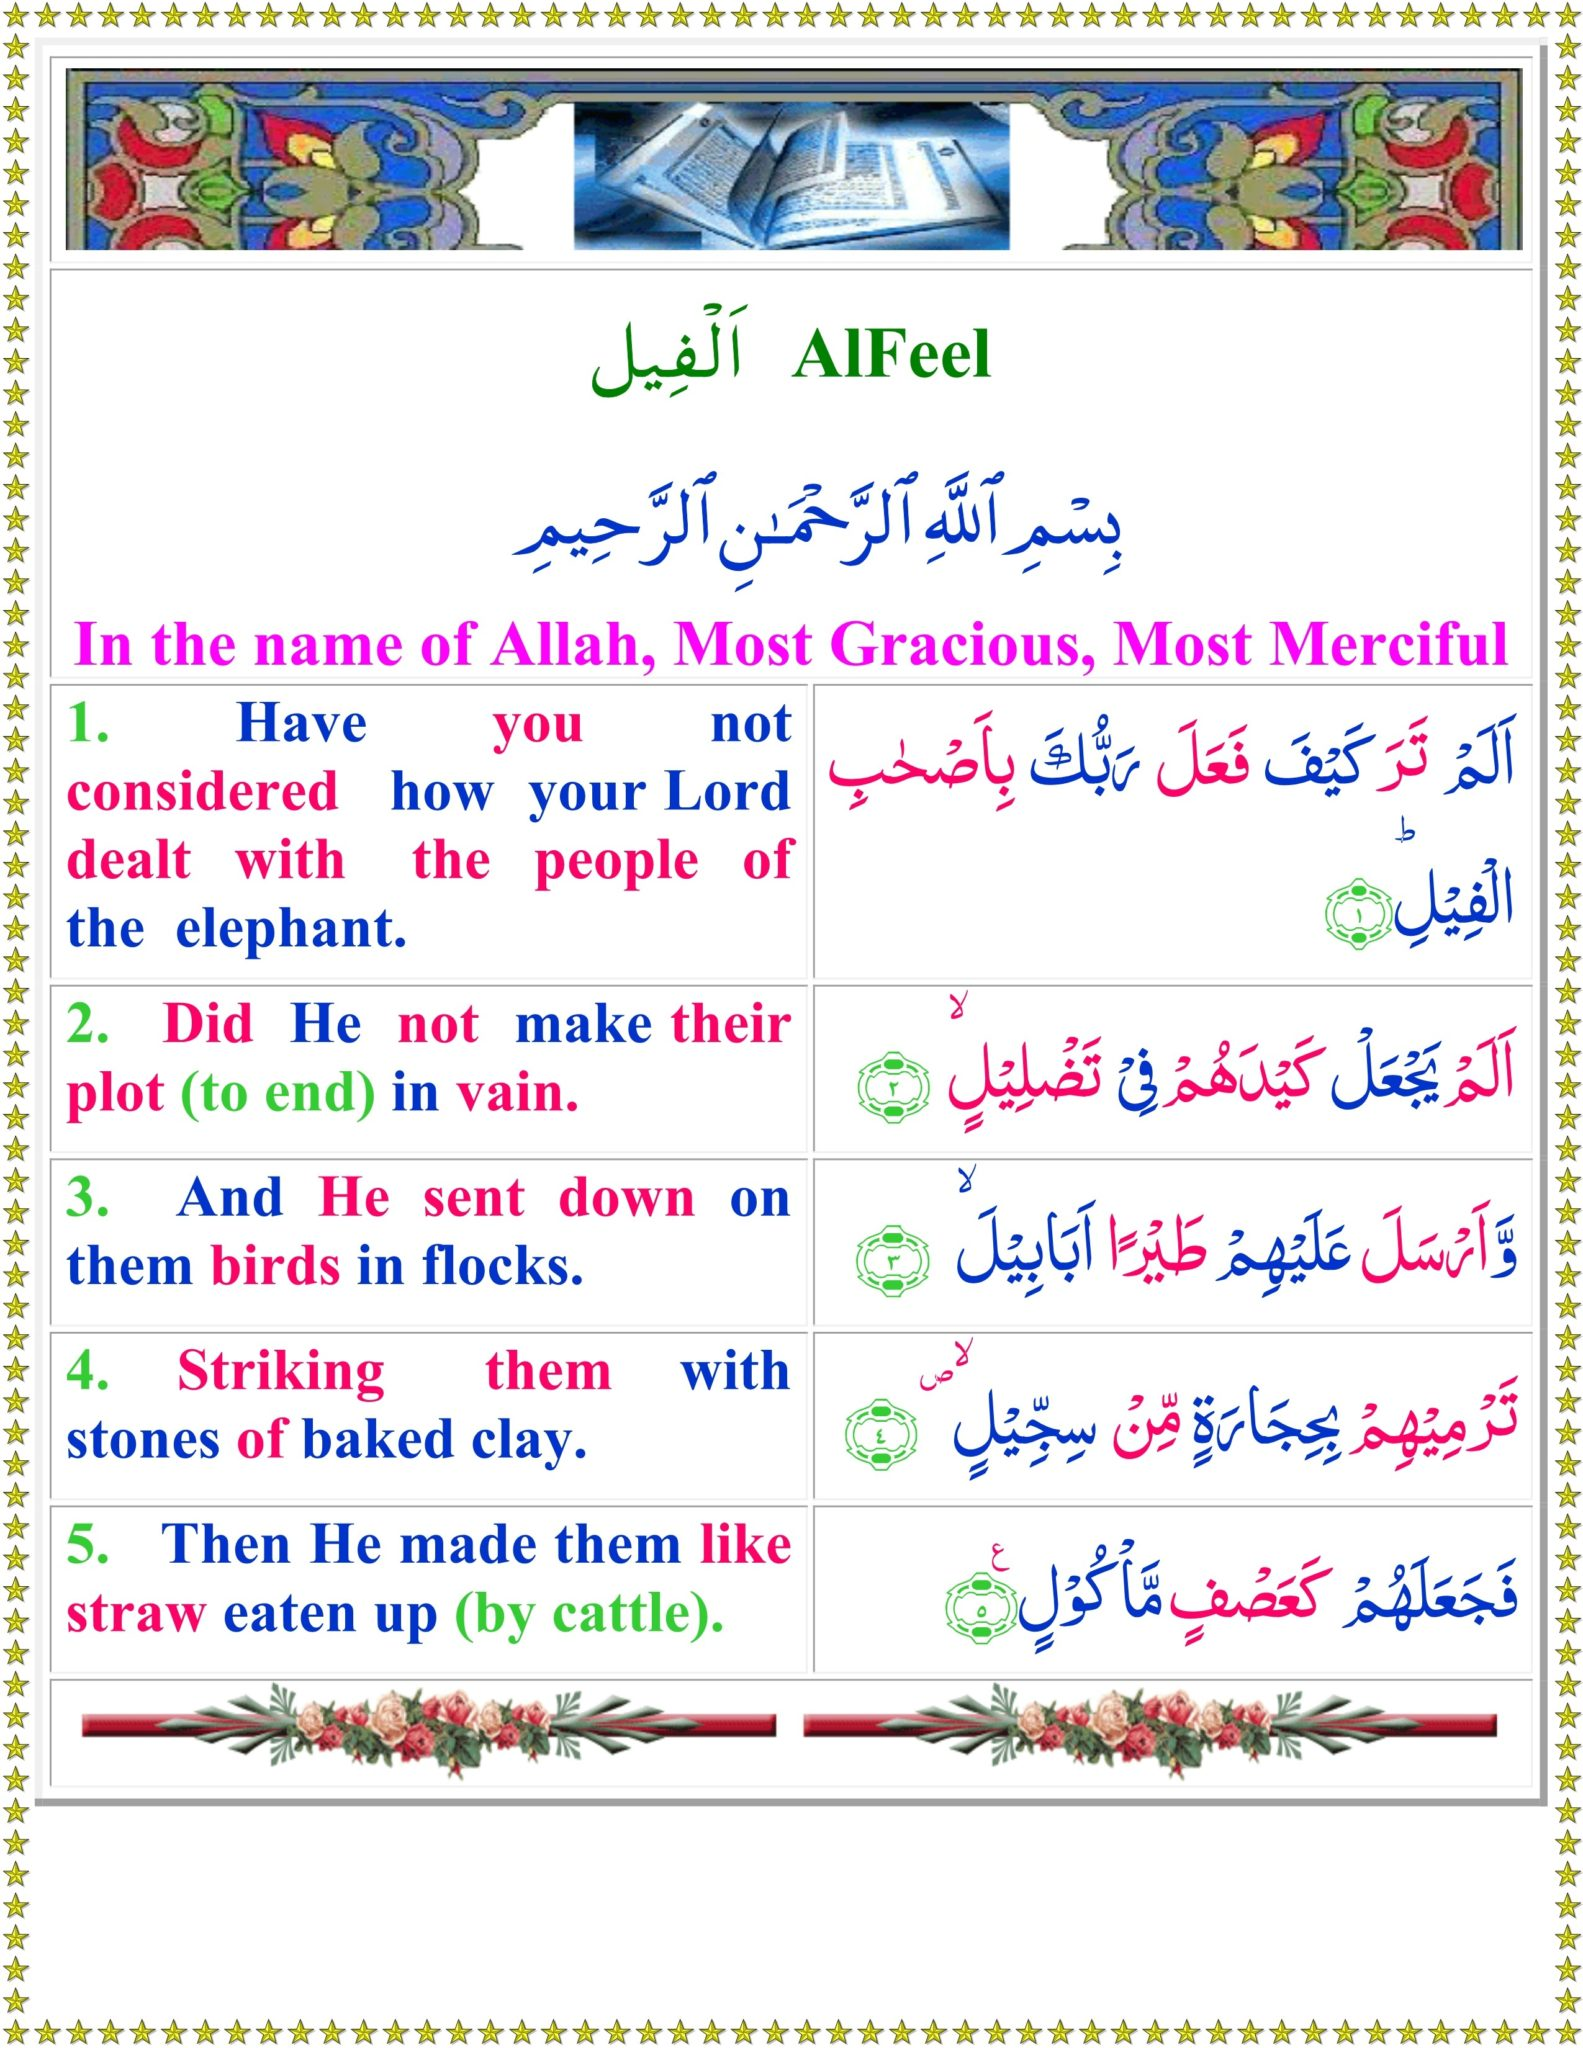 Surah Feel translation in English